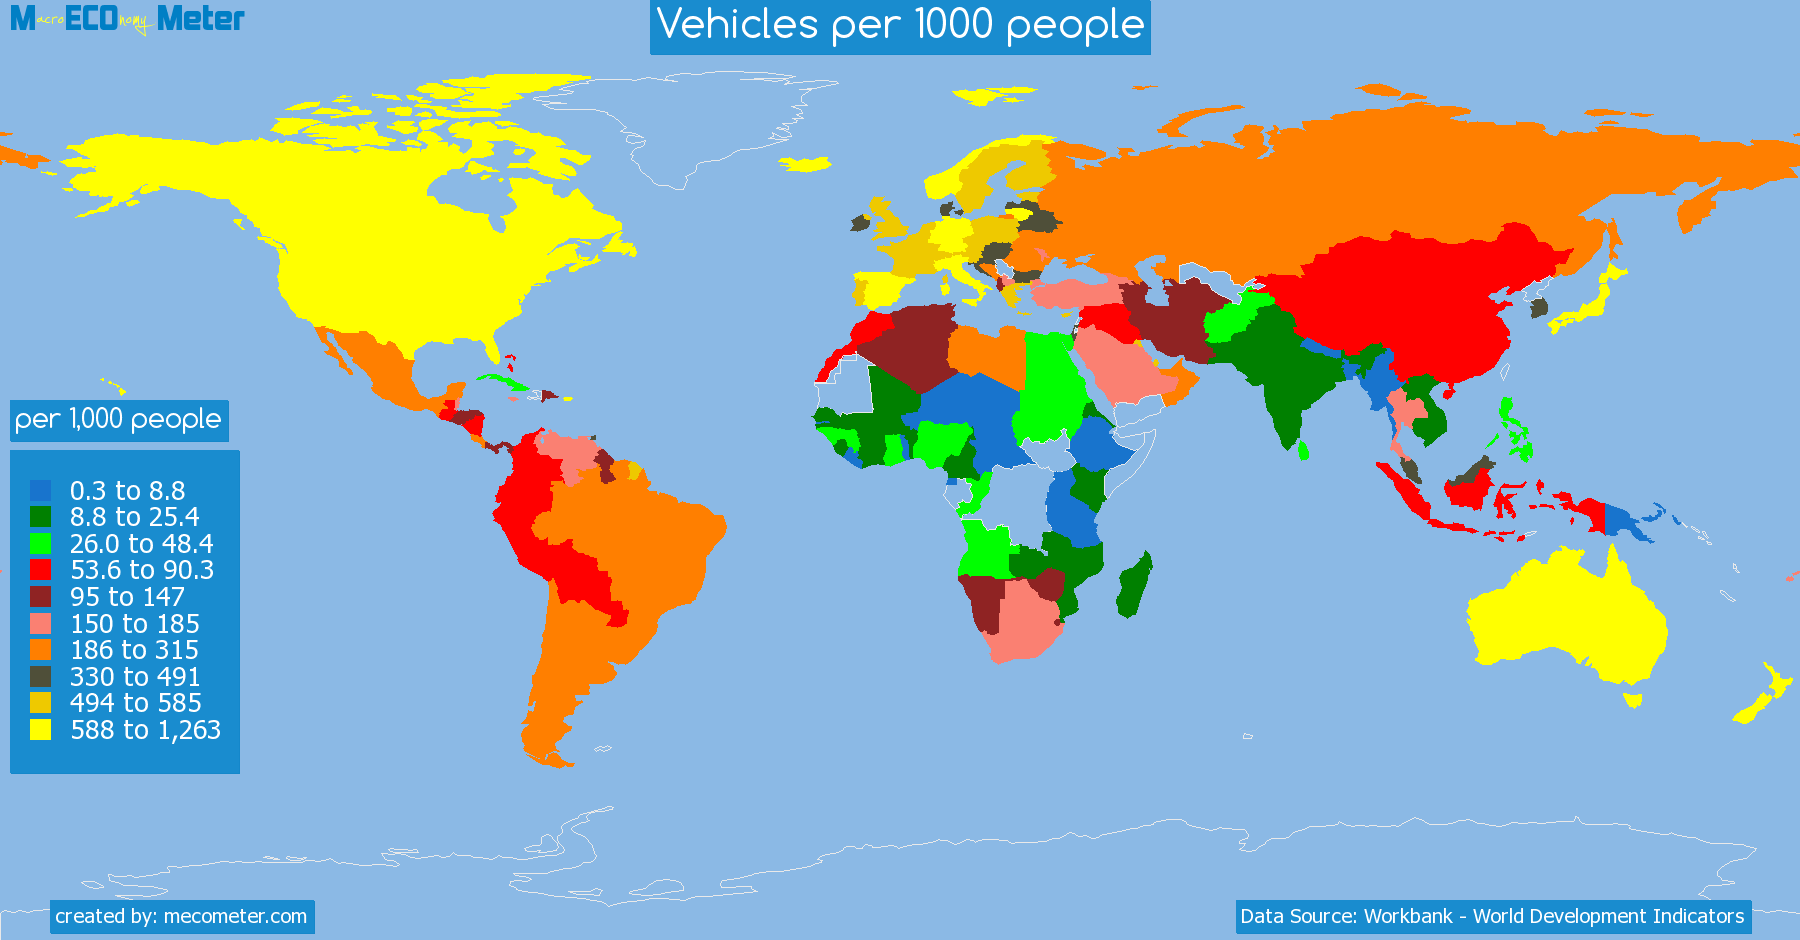 list of countries by Vehicles per 1000 people